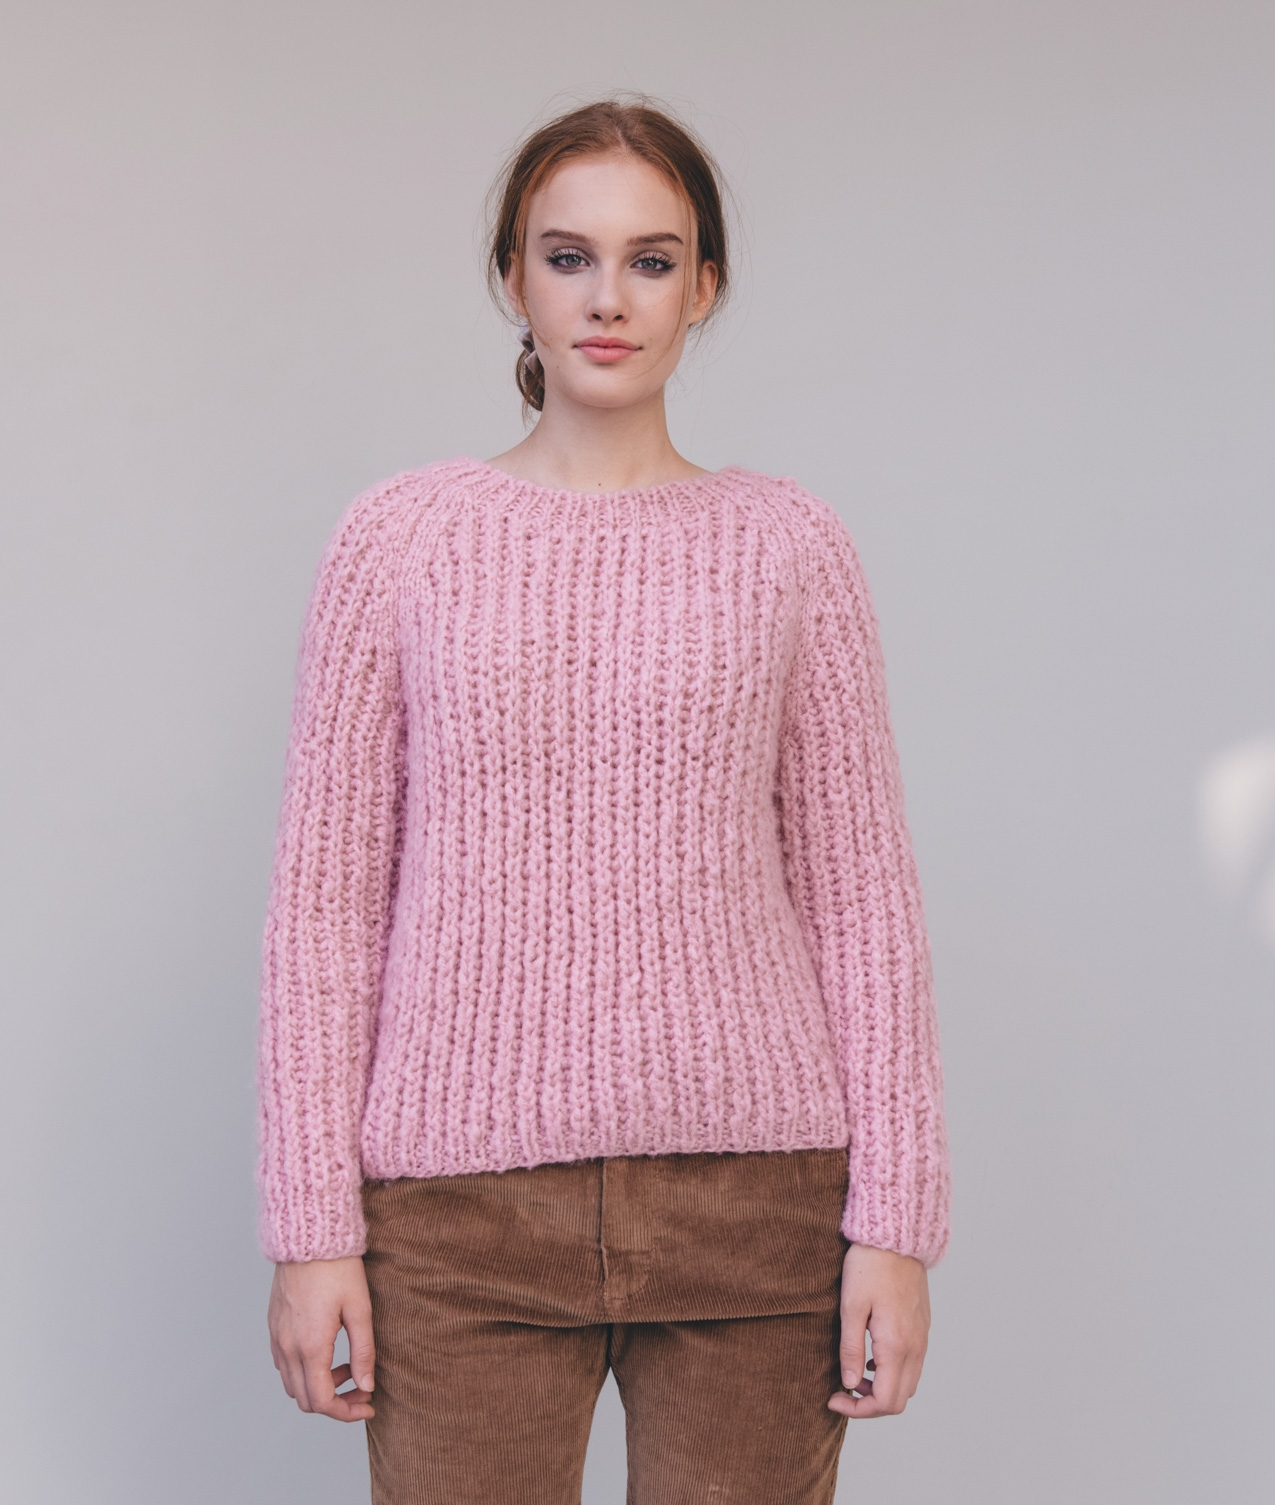 Sweaters and Tops - Wool - MARSHMALLOW SWEATER - 1